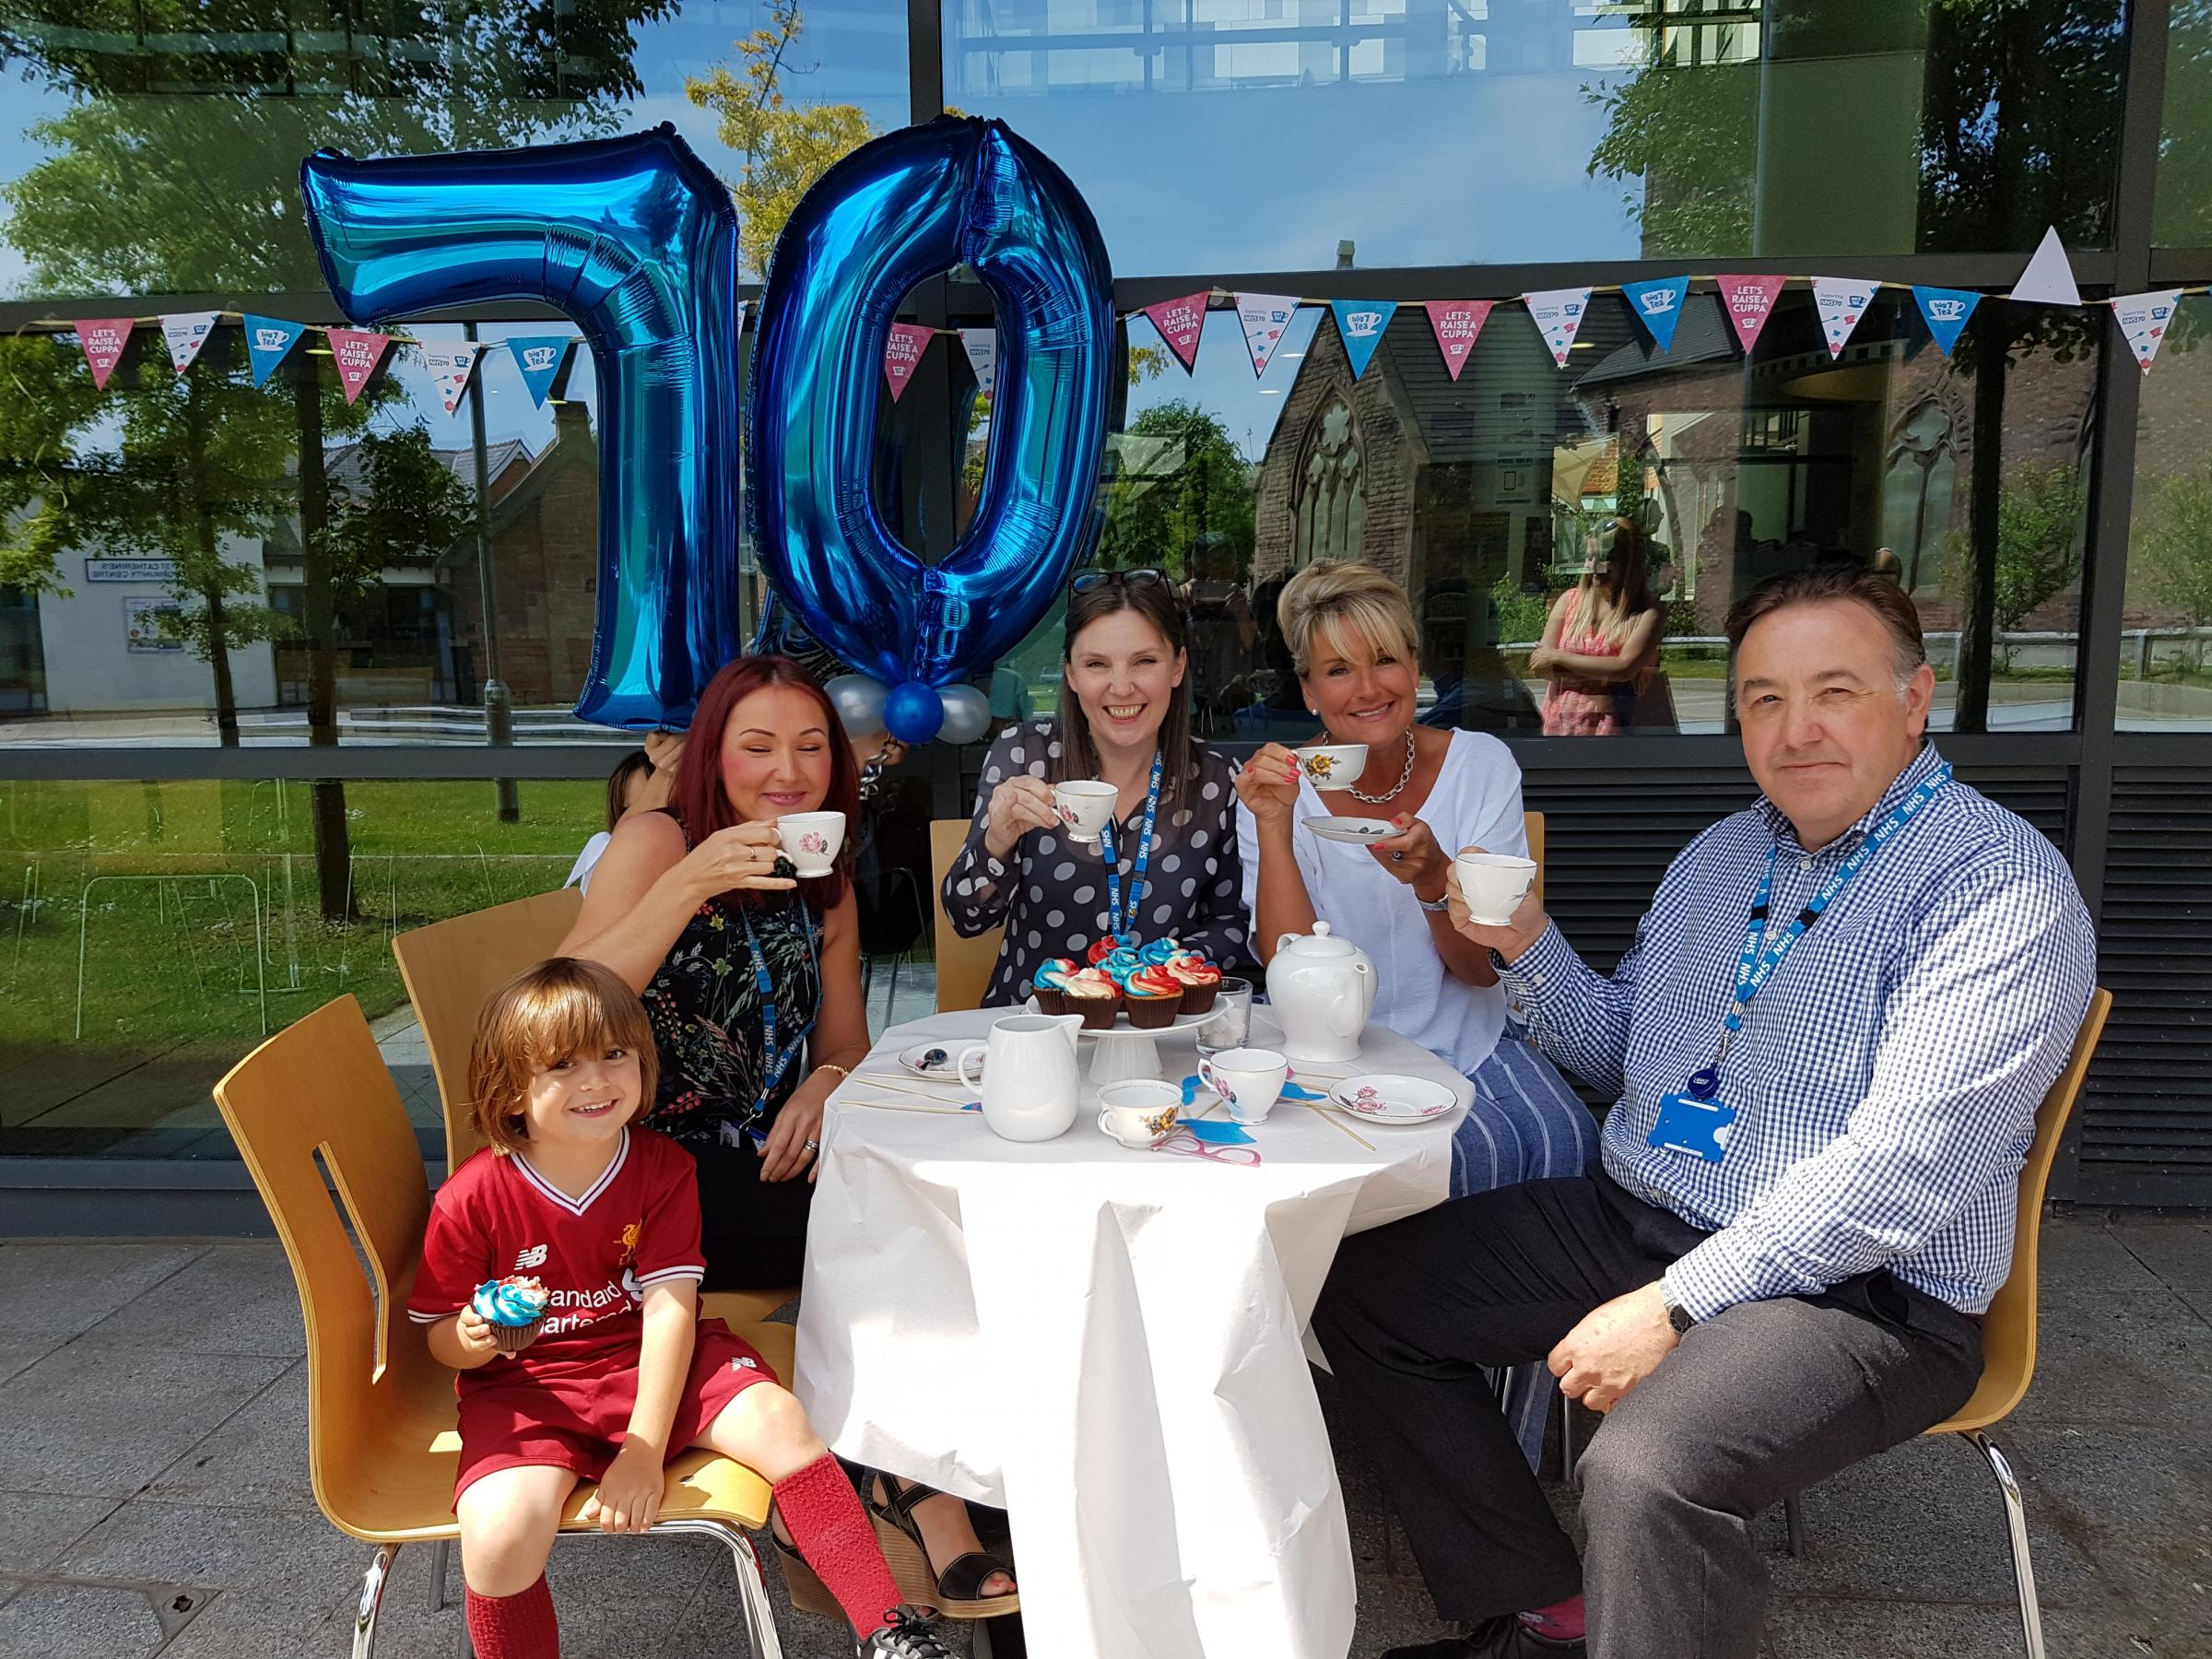 Globe readers are invited to pop in for a cuppa and a cake durin the Big 7Tea party, at the venue in Derby Road on Thursday July 5 from 1-4pm